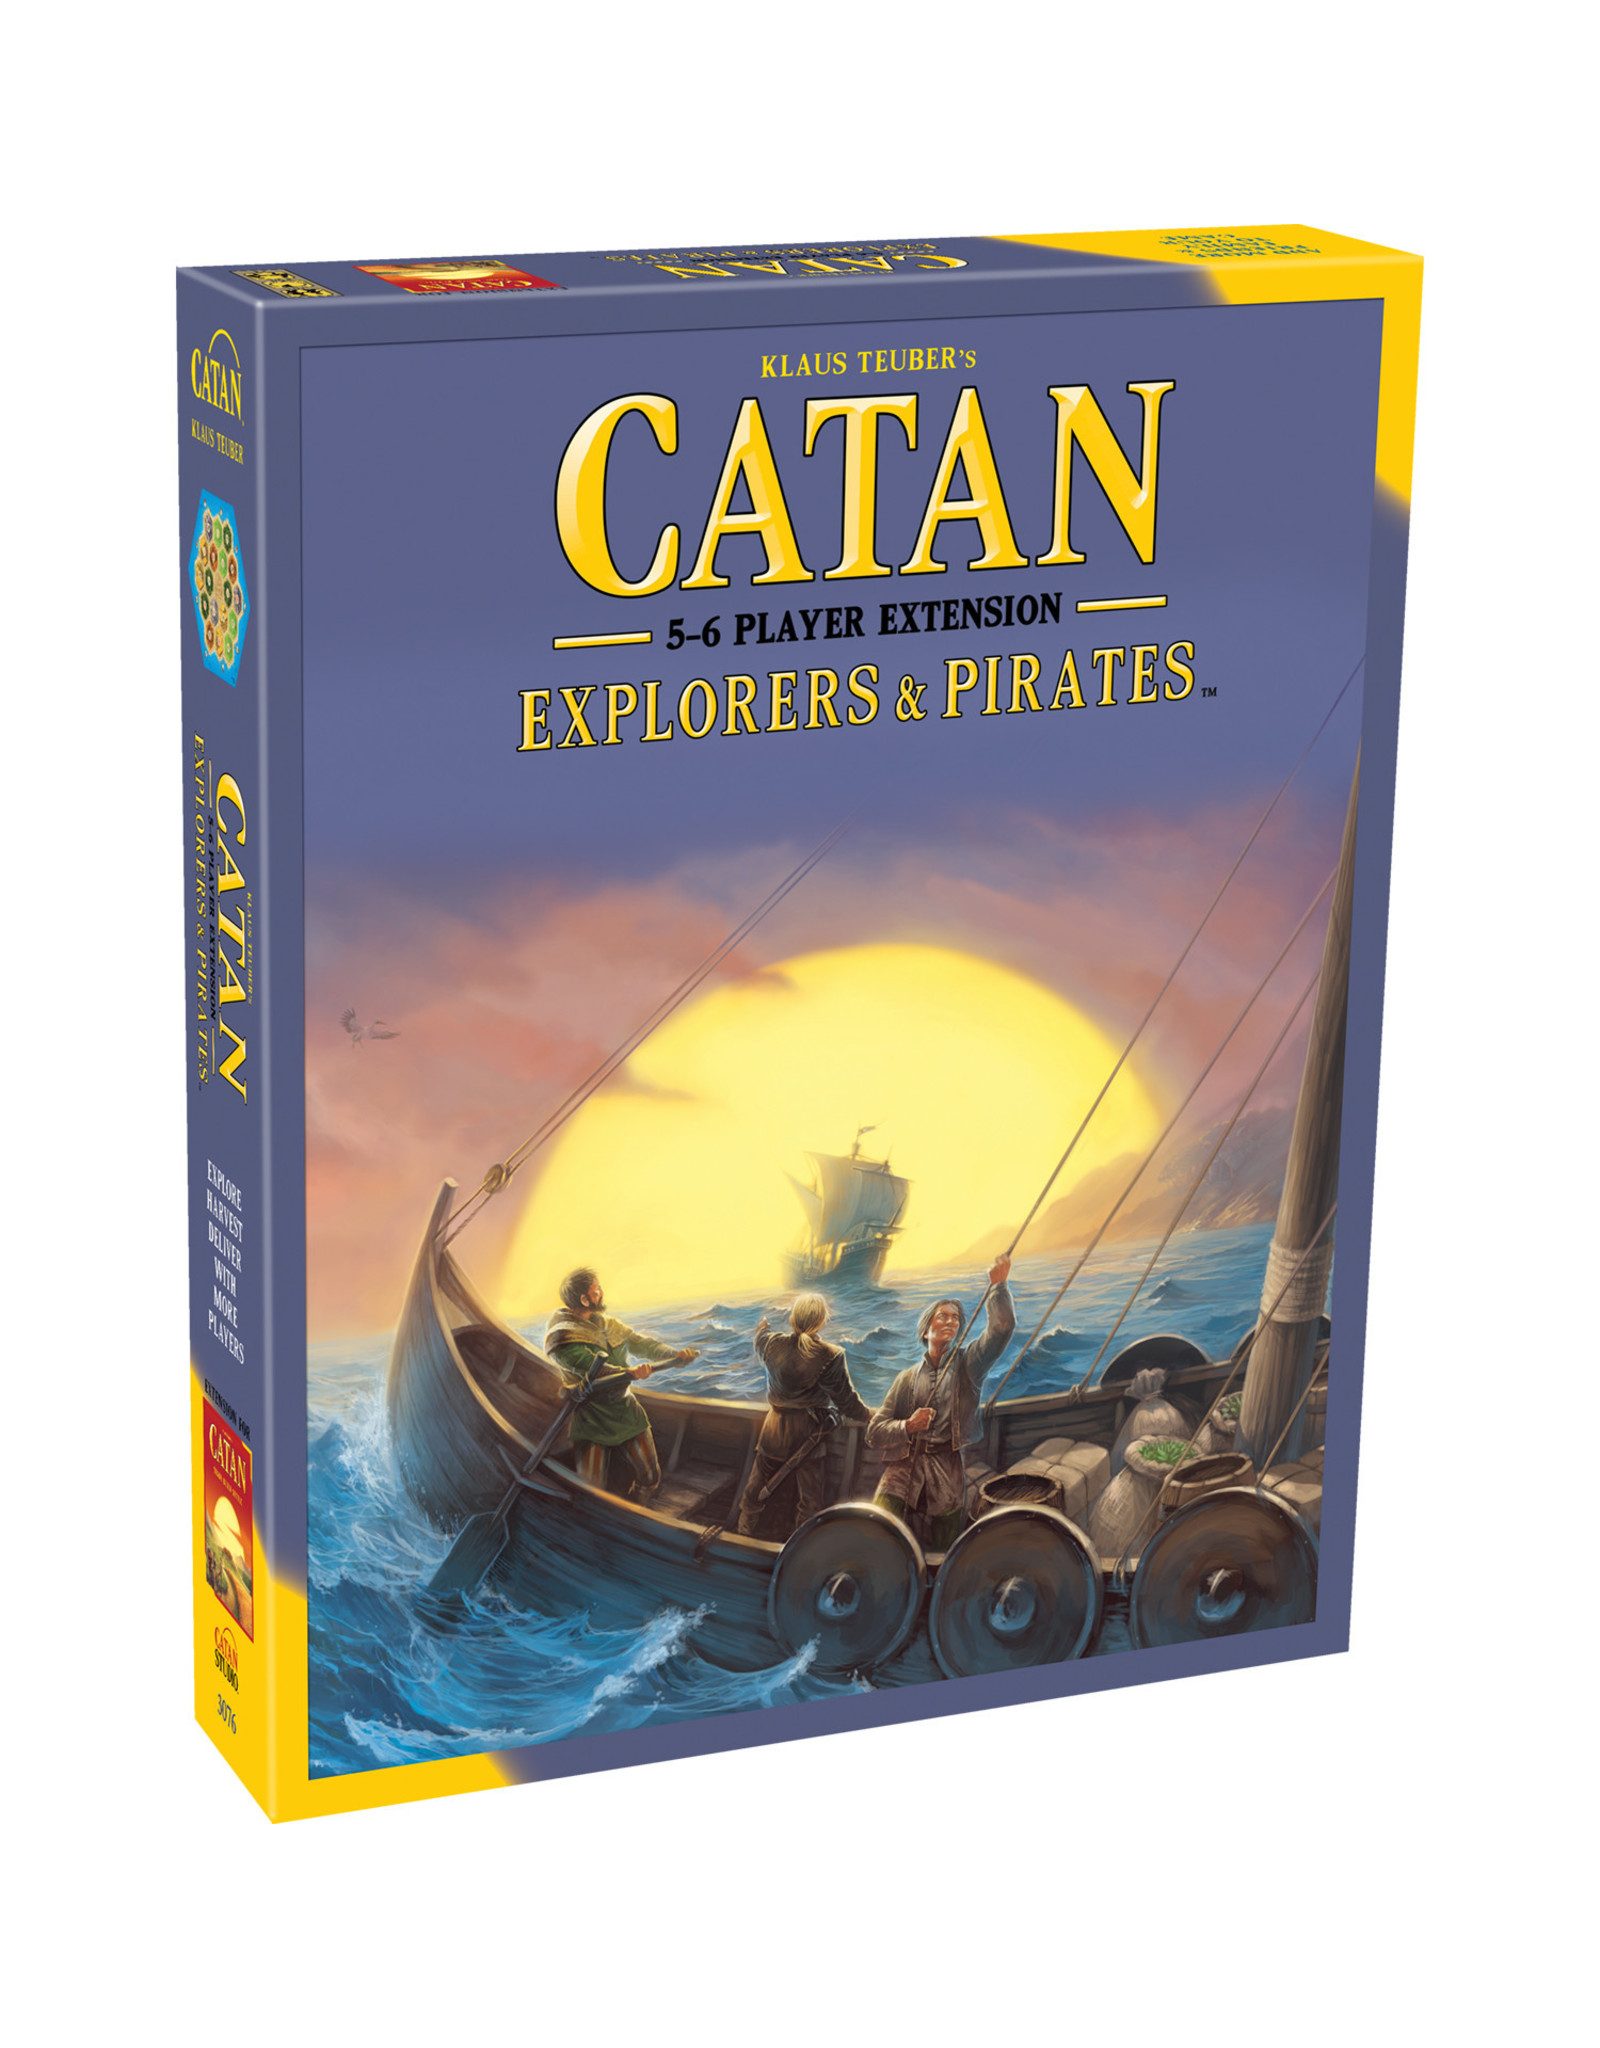 CATAN CATAN EXT: EXPLORERS & PIRATES 5-6 PLAYER (English)